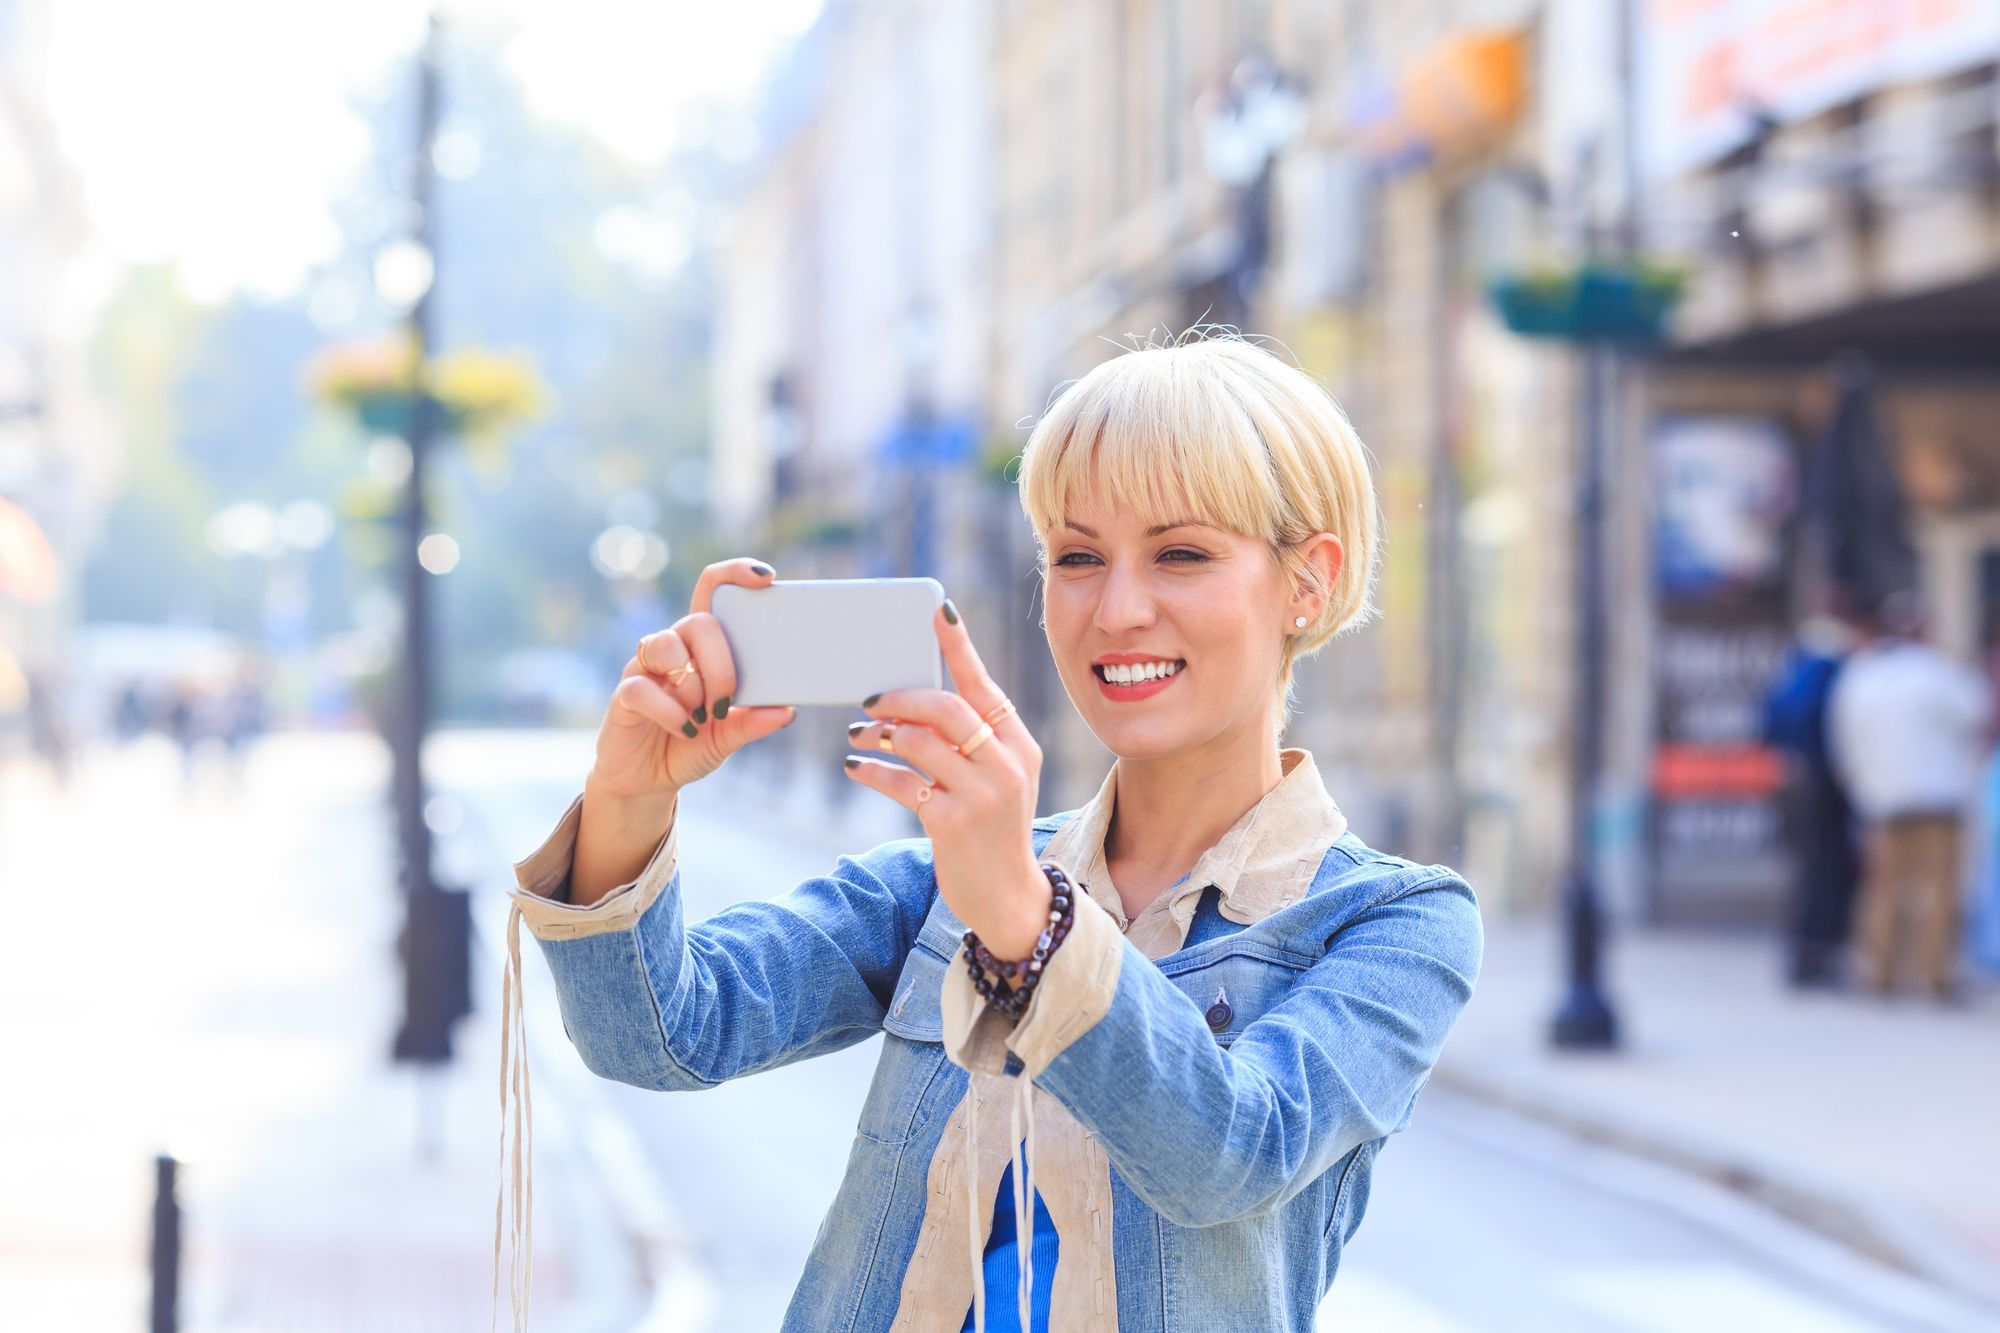 young woman with blonde hair bangs taking selfie. Short summer hairstyles